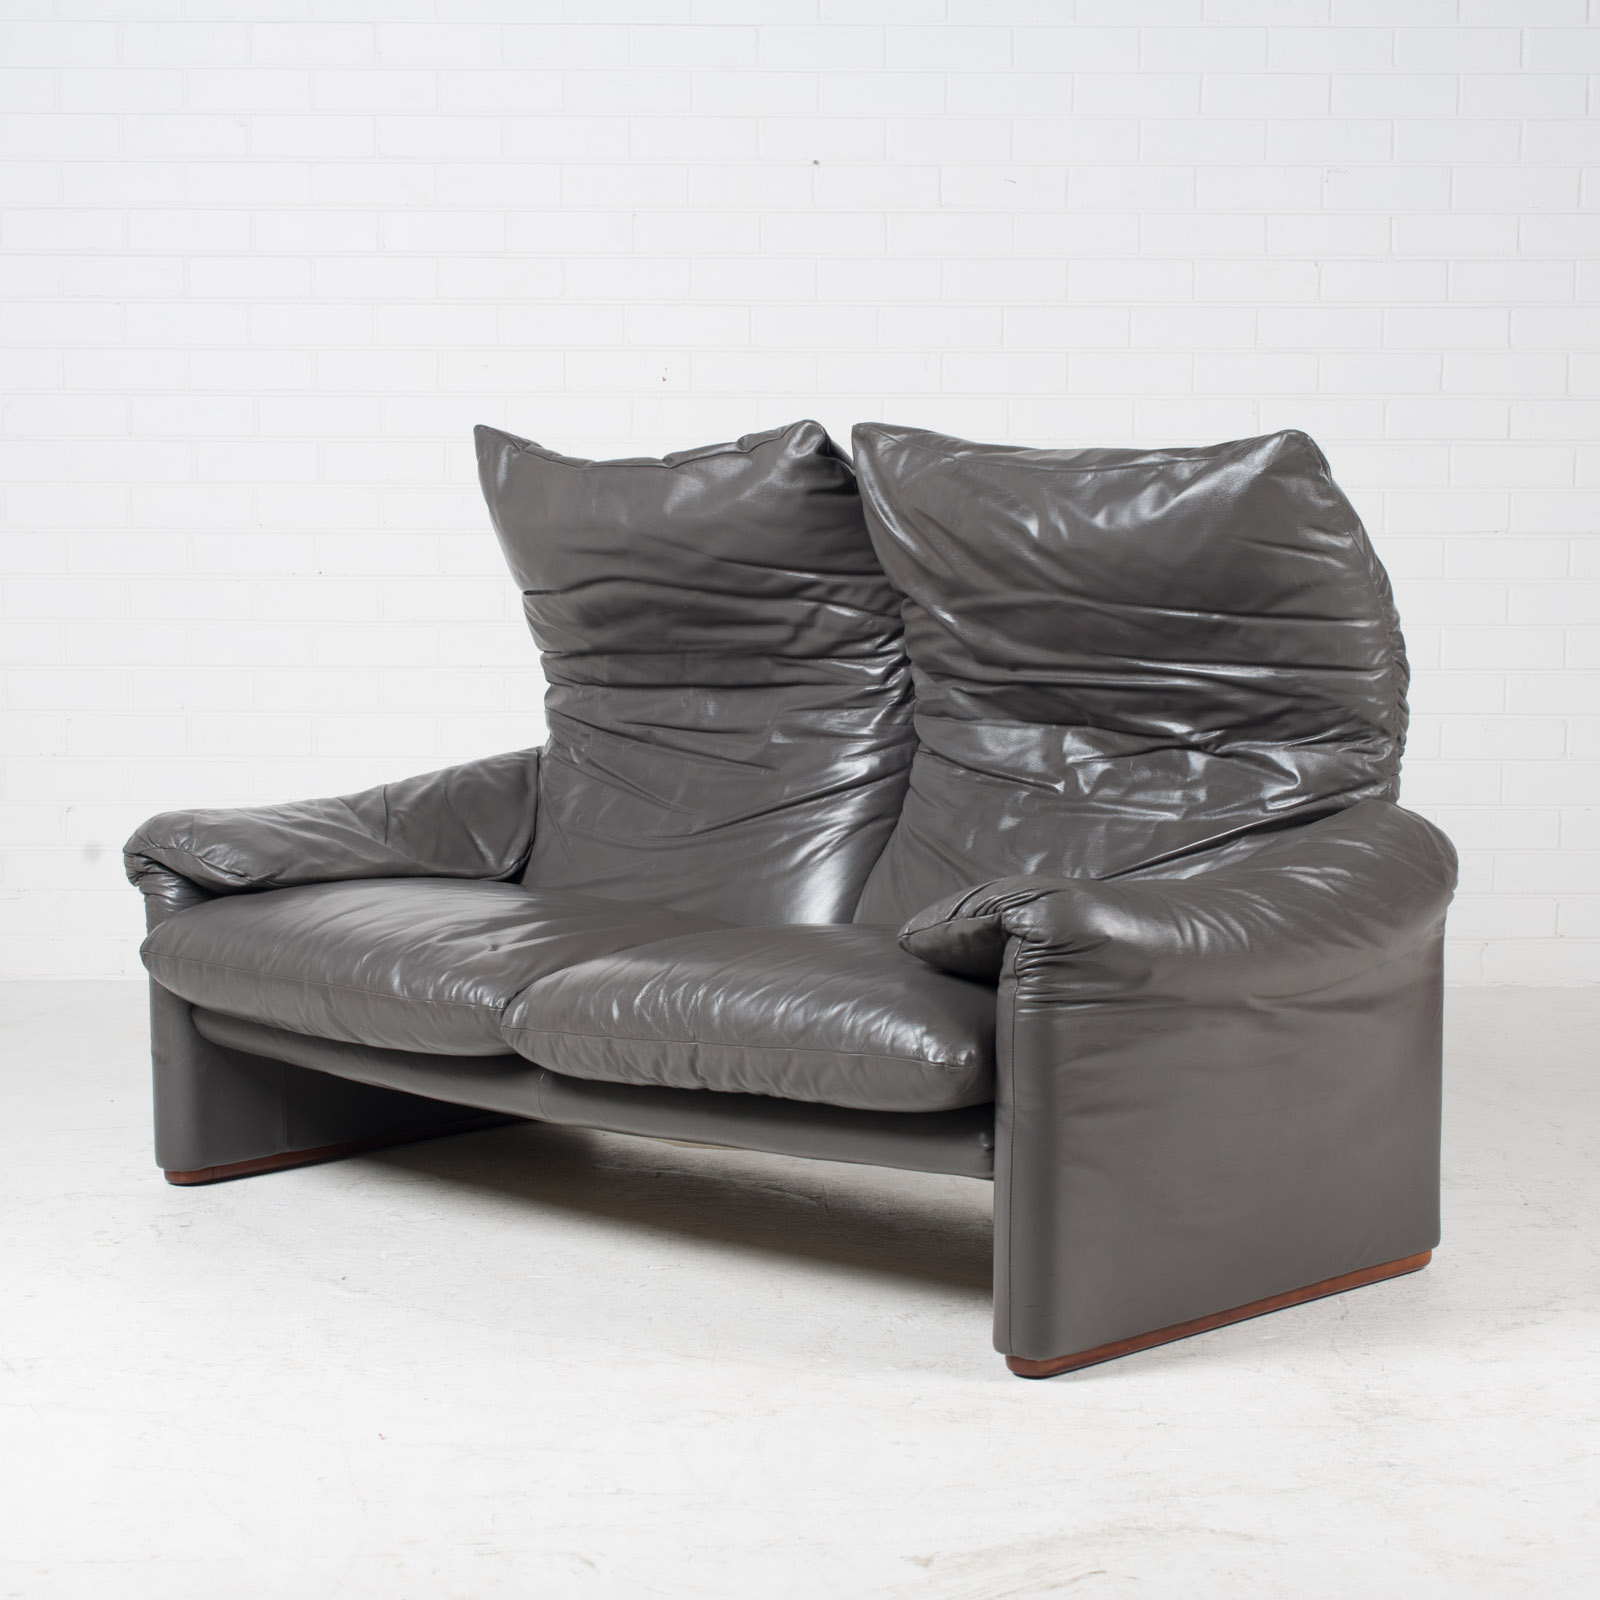 Maralunga 3 Seat Sofa By Vico Magistretti For Cassina In Grey Leather 1970s Italy 04 1.jpg